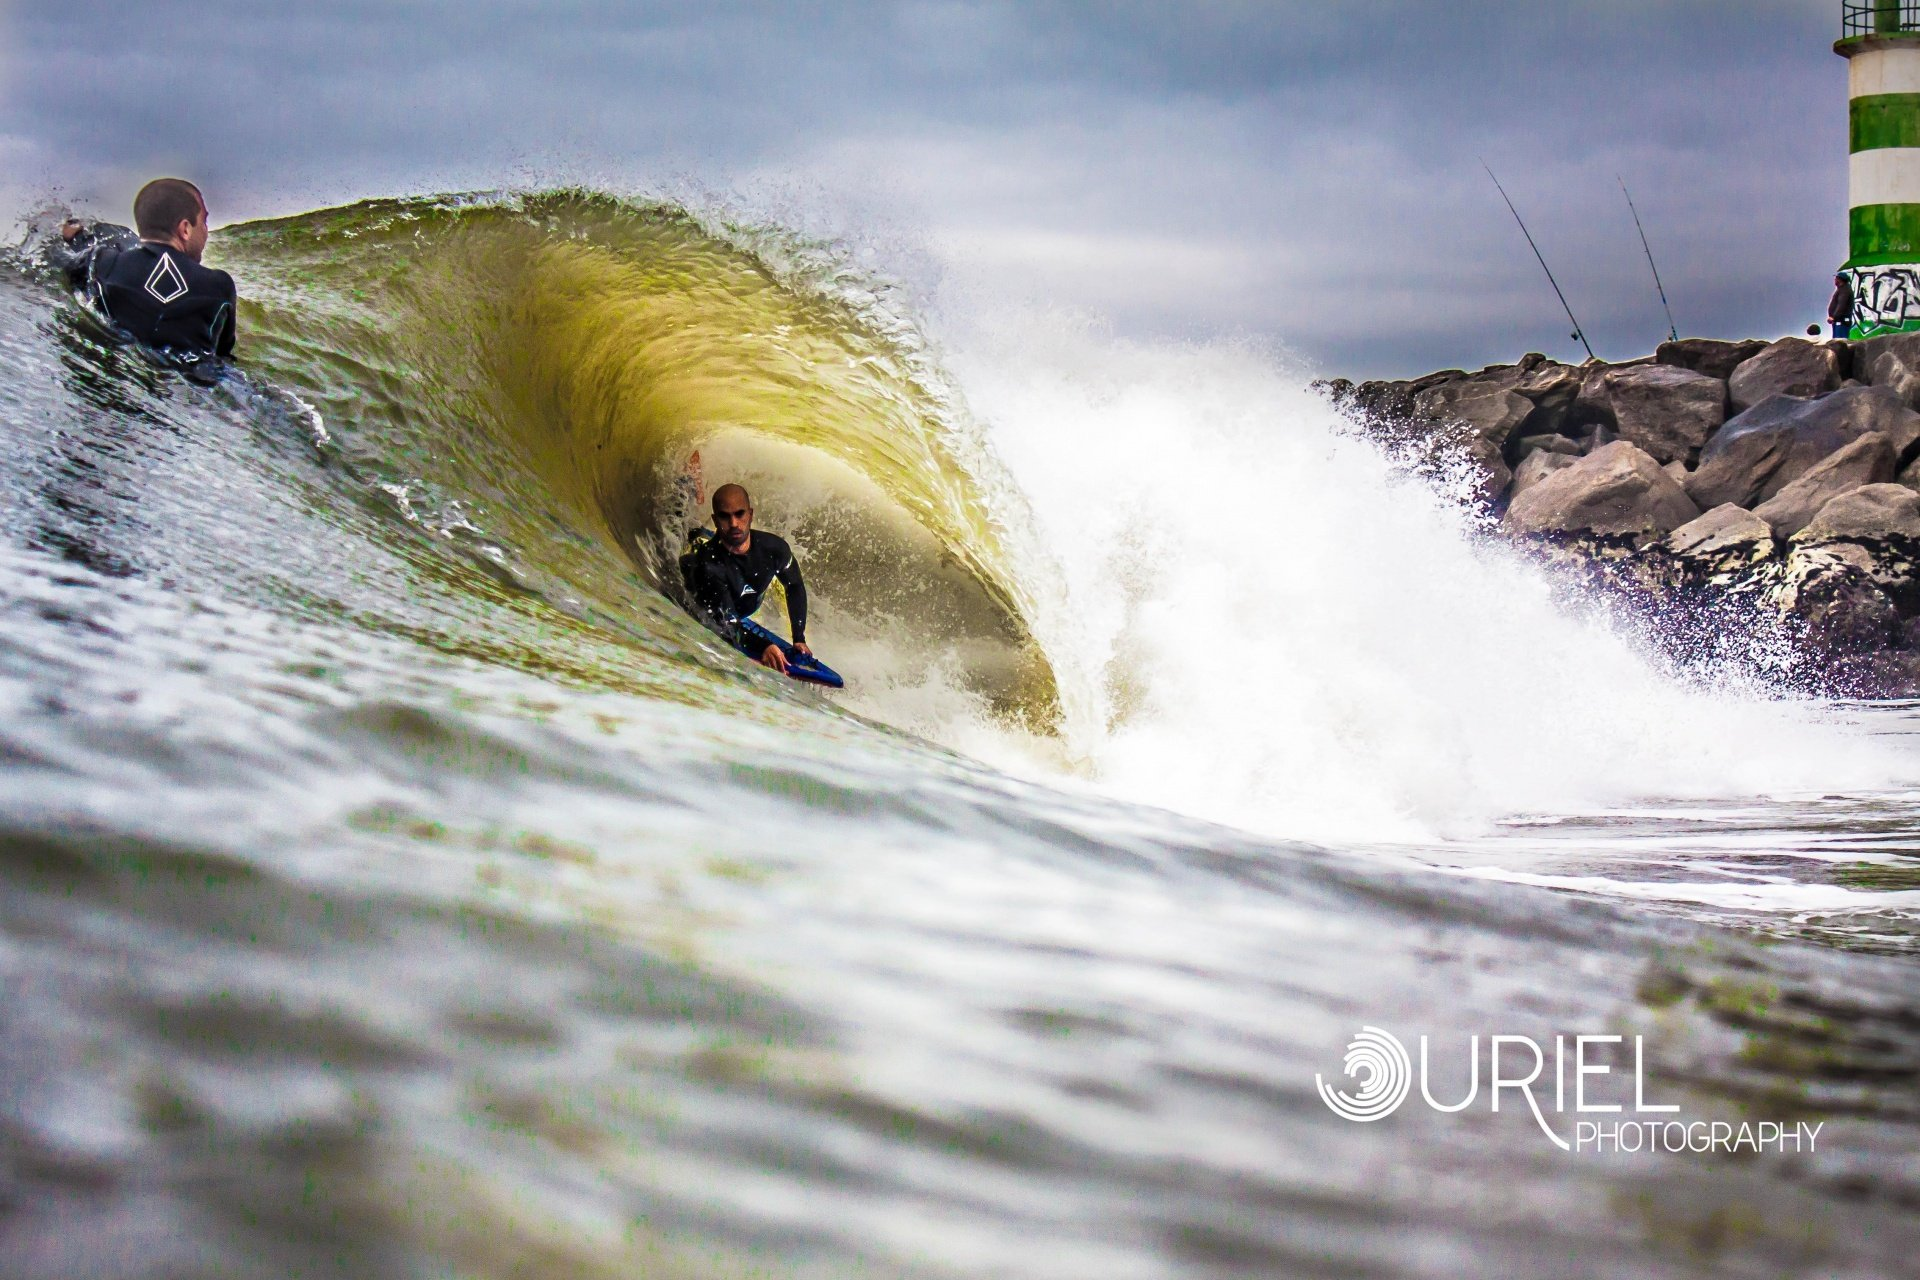 Uriel Surf Photographhy's photo of Viana do Castelo